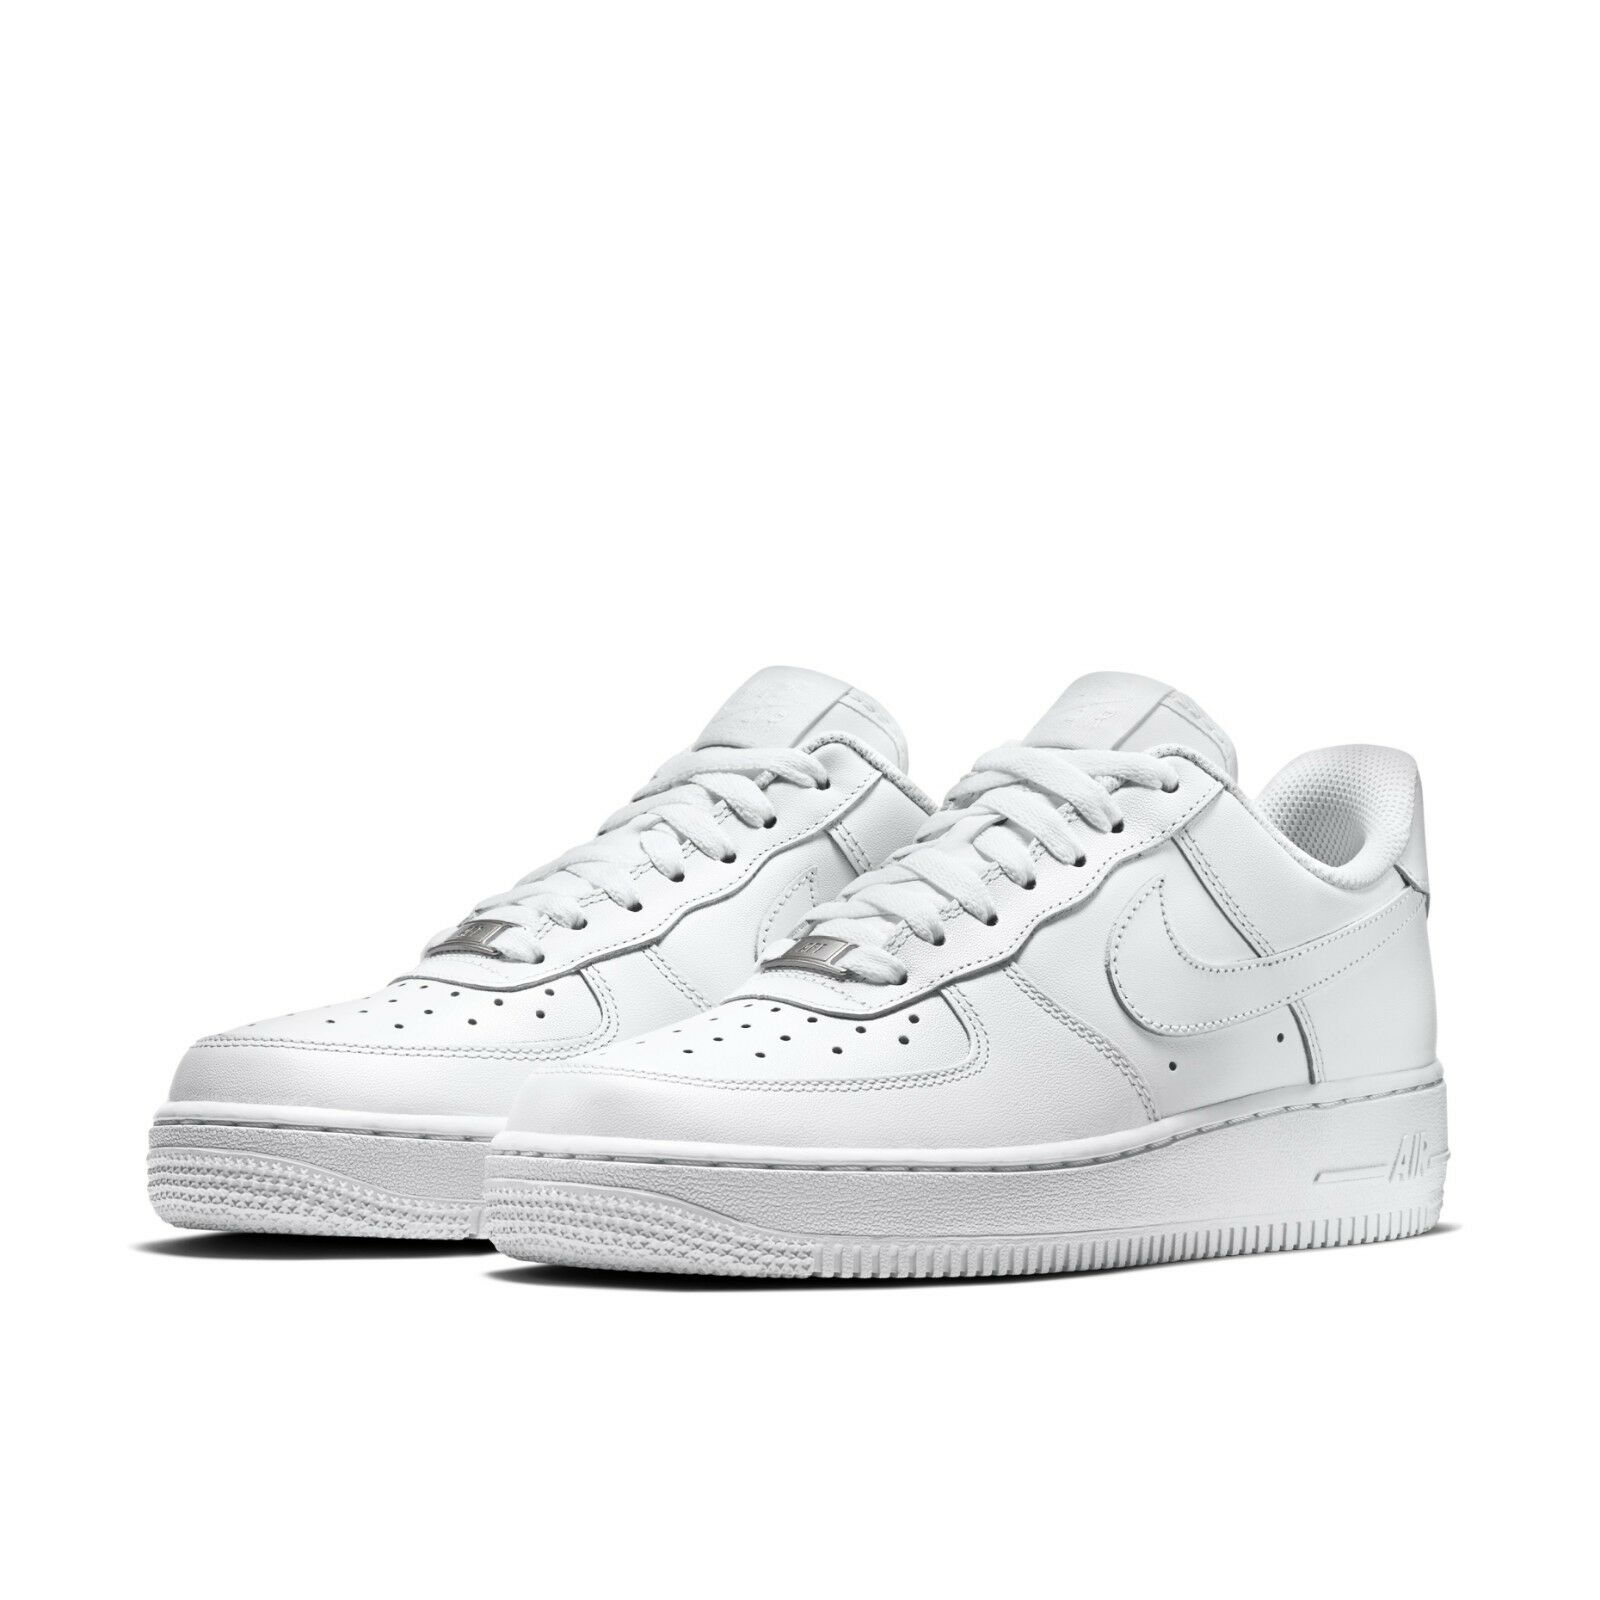 super popular 3f942 99470 Nike Womens Wmns Air Force 1 07 Low Whiteout Classic Triple White AF1  315115-112